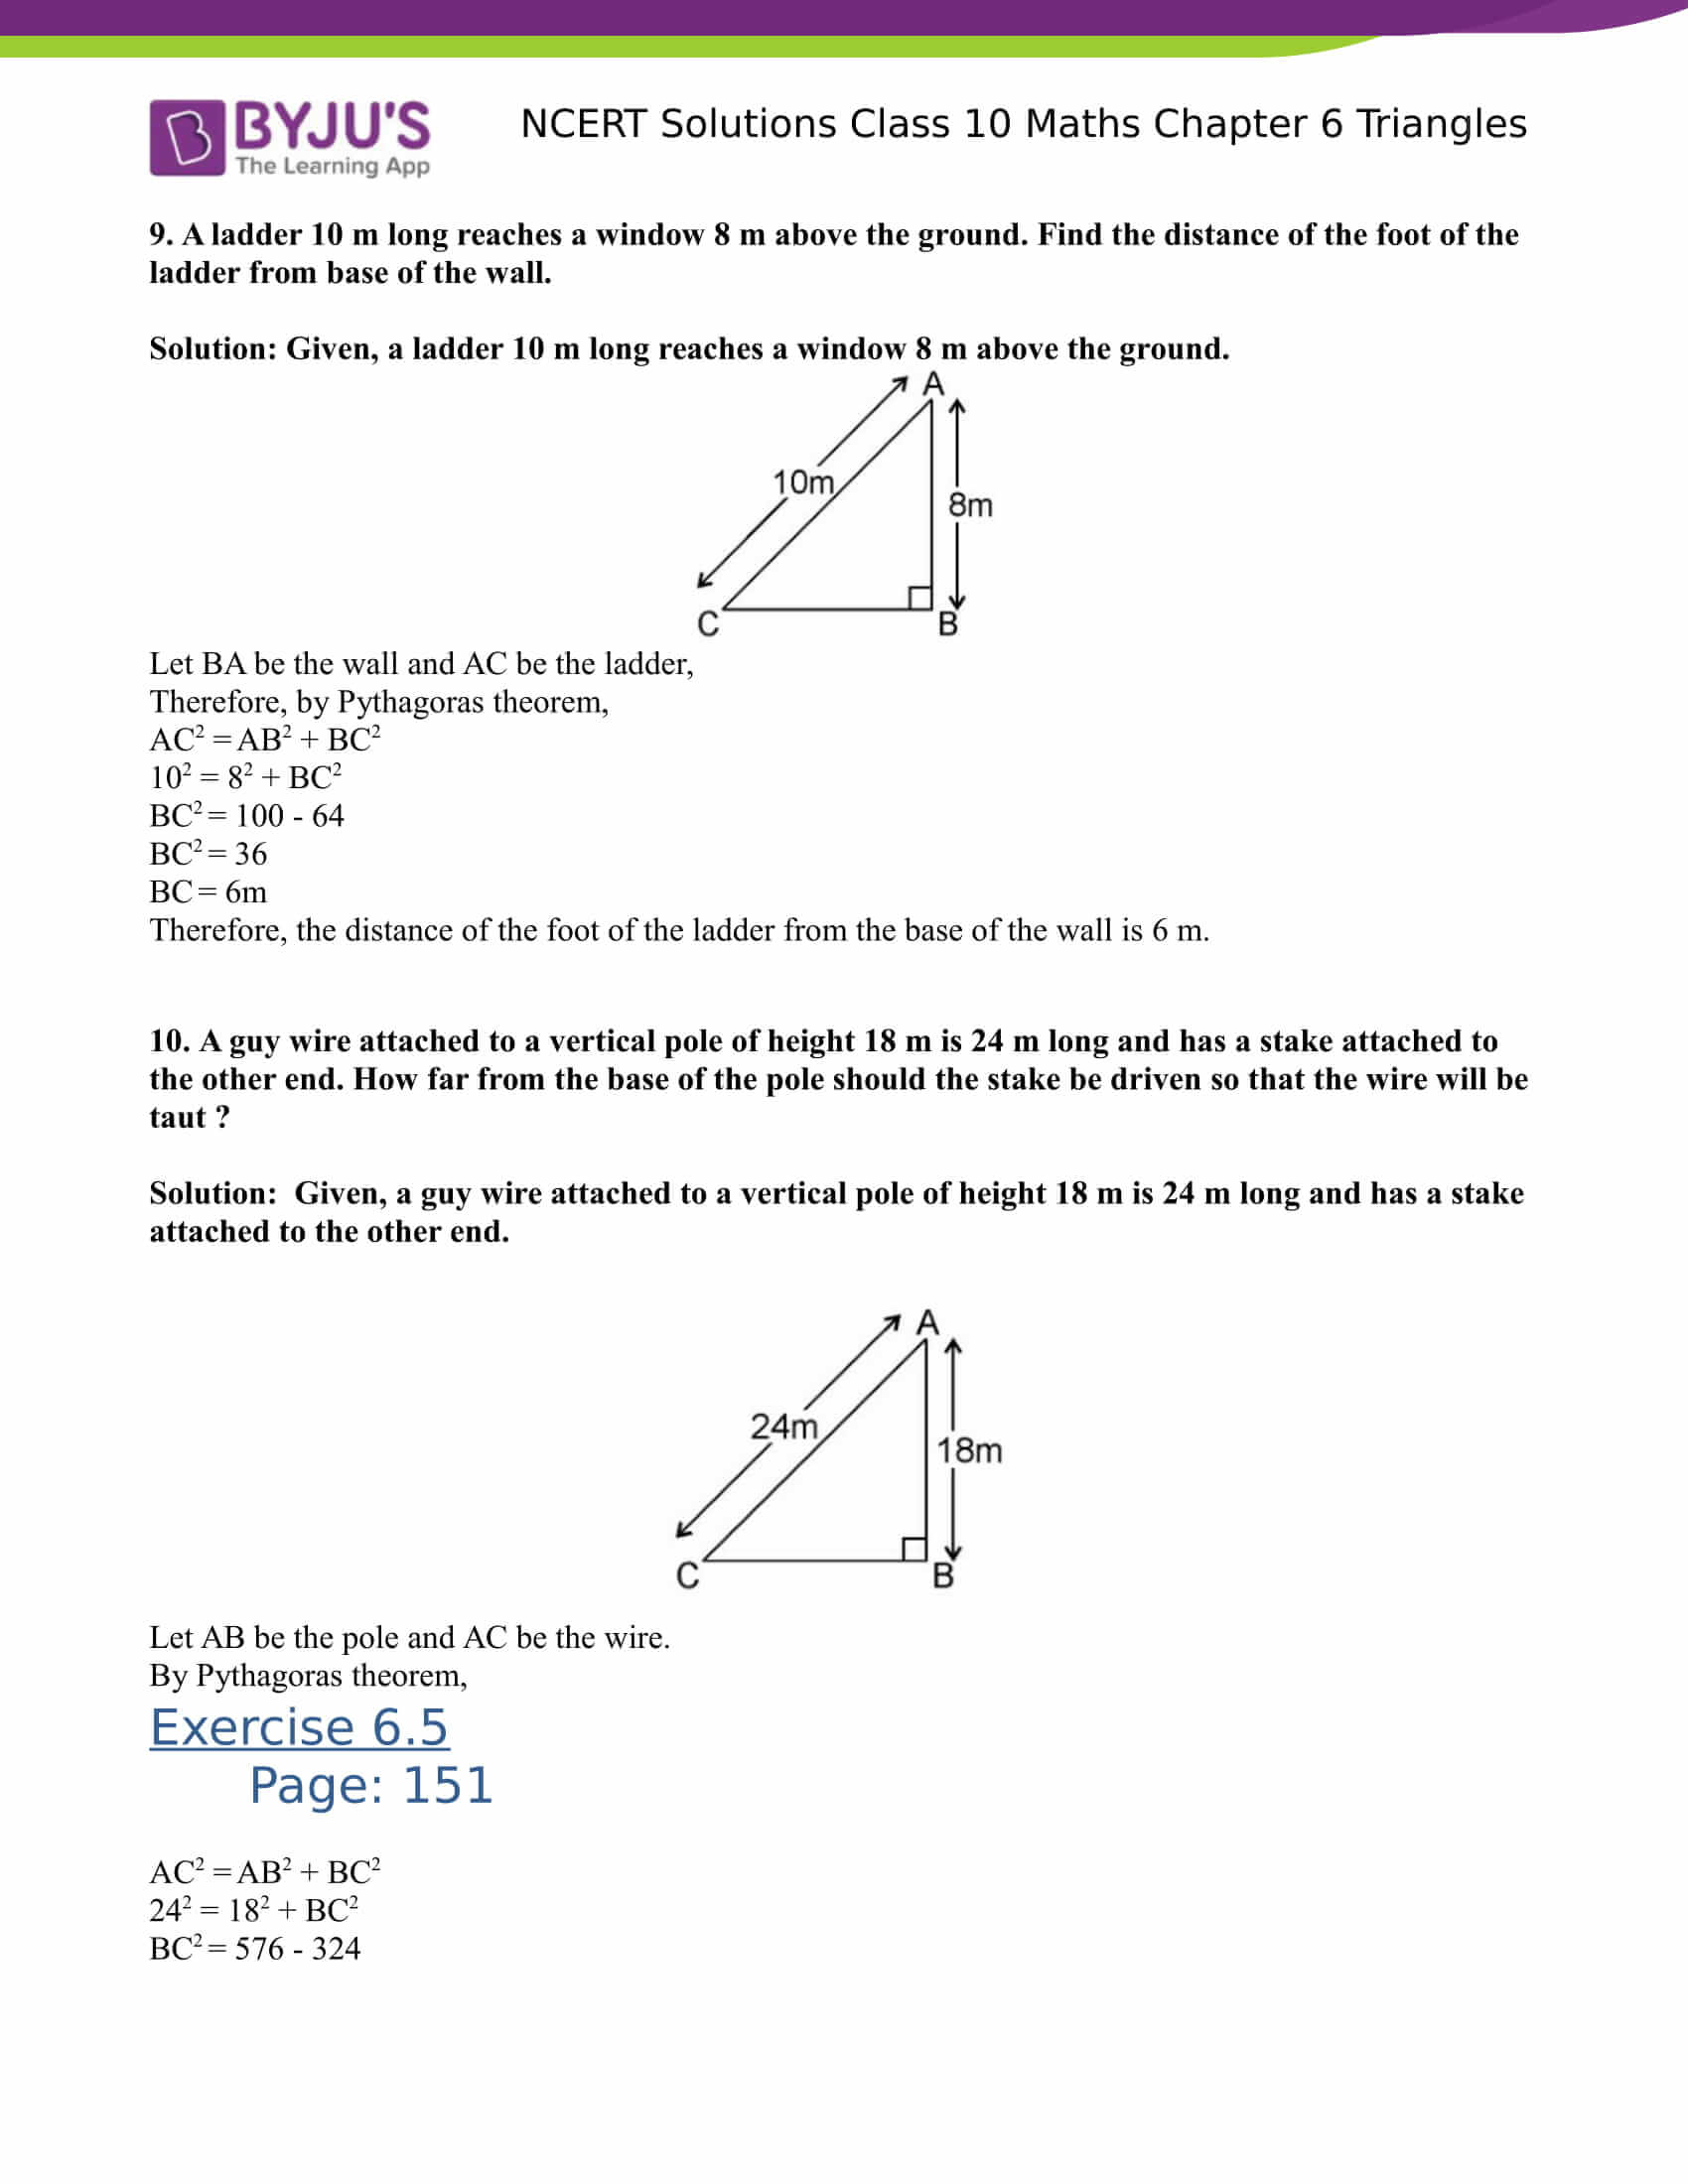 NCERT Solutions for class 10 Maths Chapter 6 Triangles Part 40